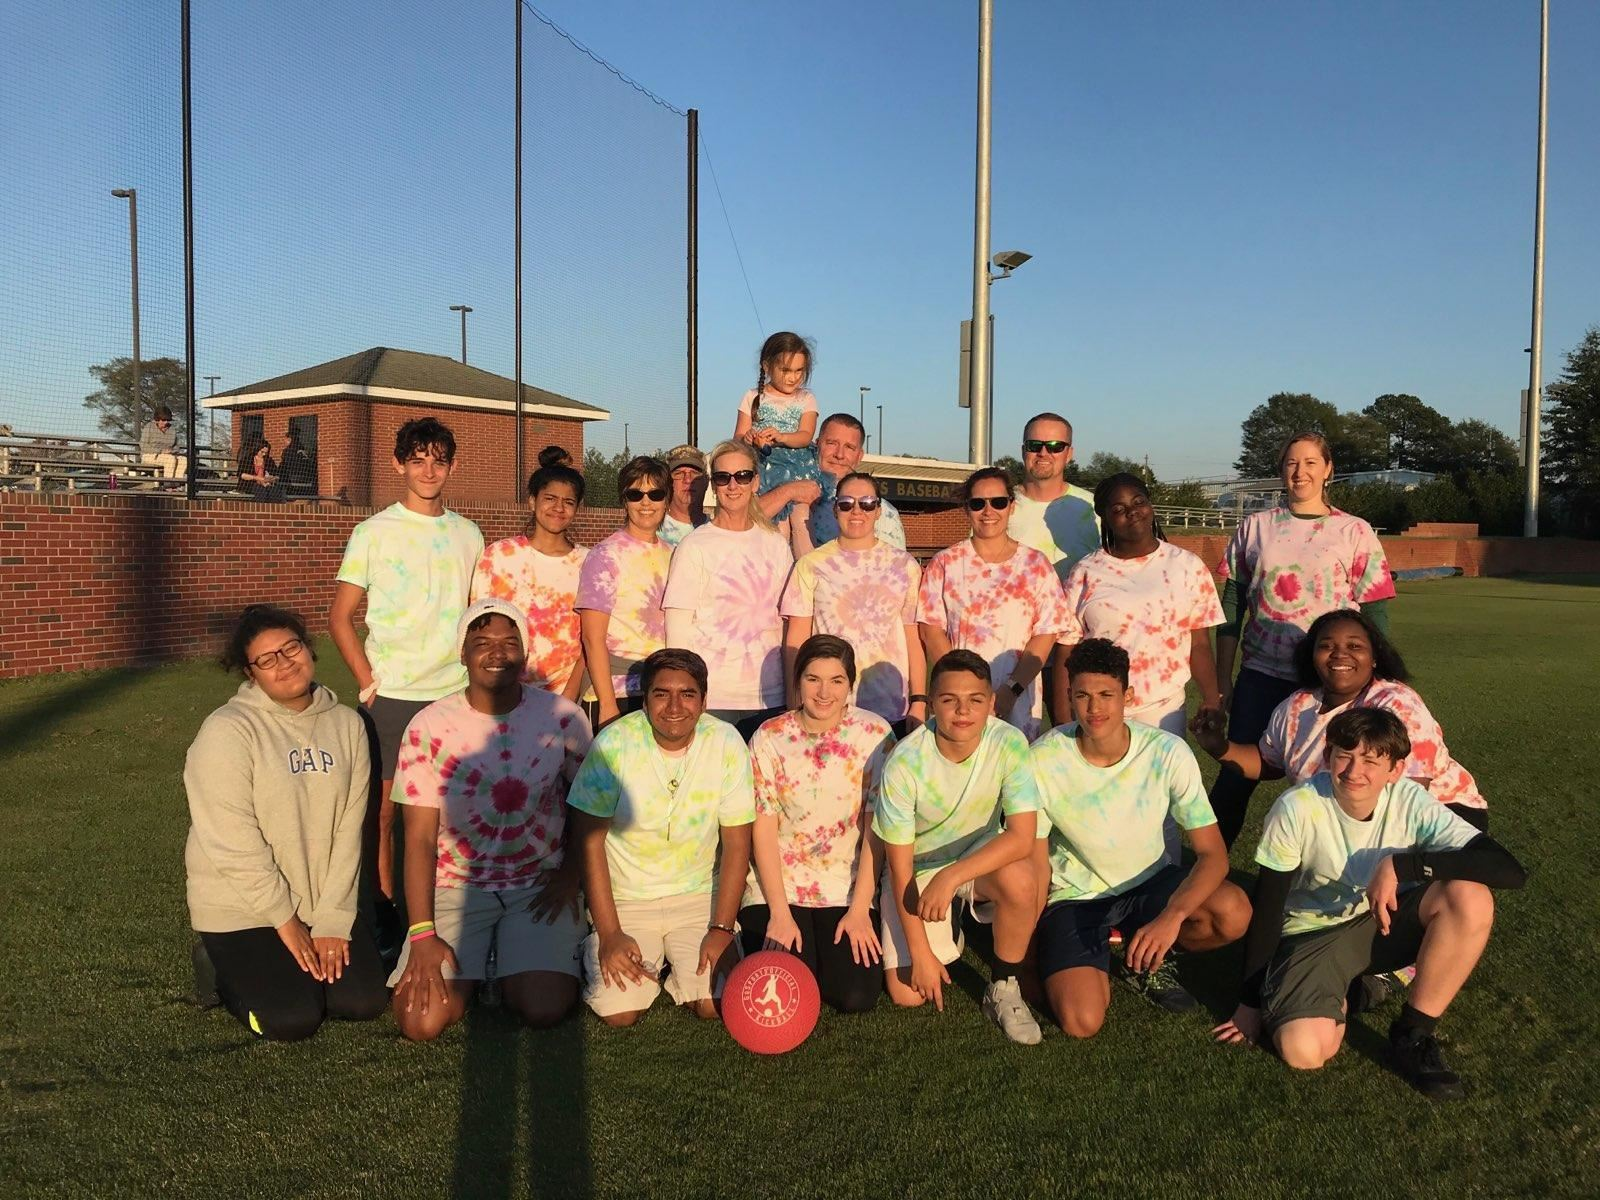 LCHS NAF AOHT kickball game participants